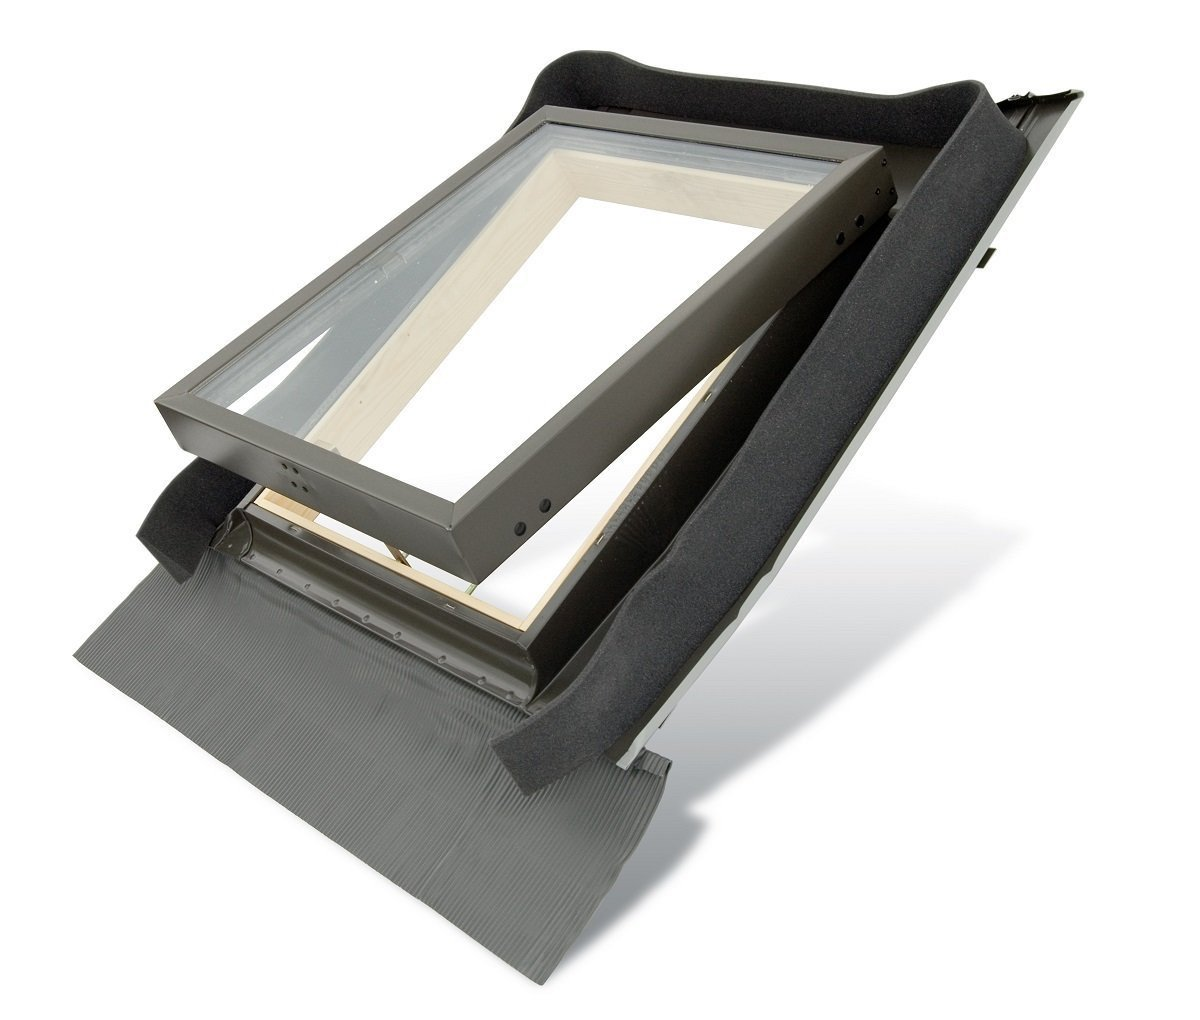 FENSTRO Skylight (45cm x 73cm) Access Roof Window with Integrated Flashing Altaterra